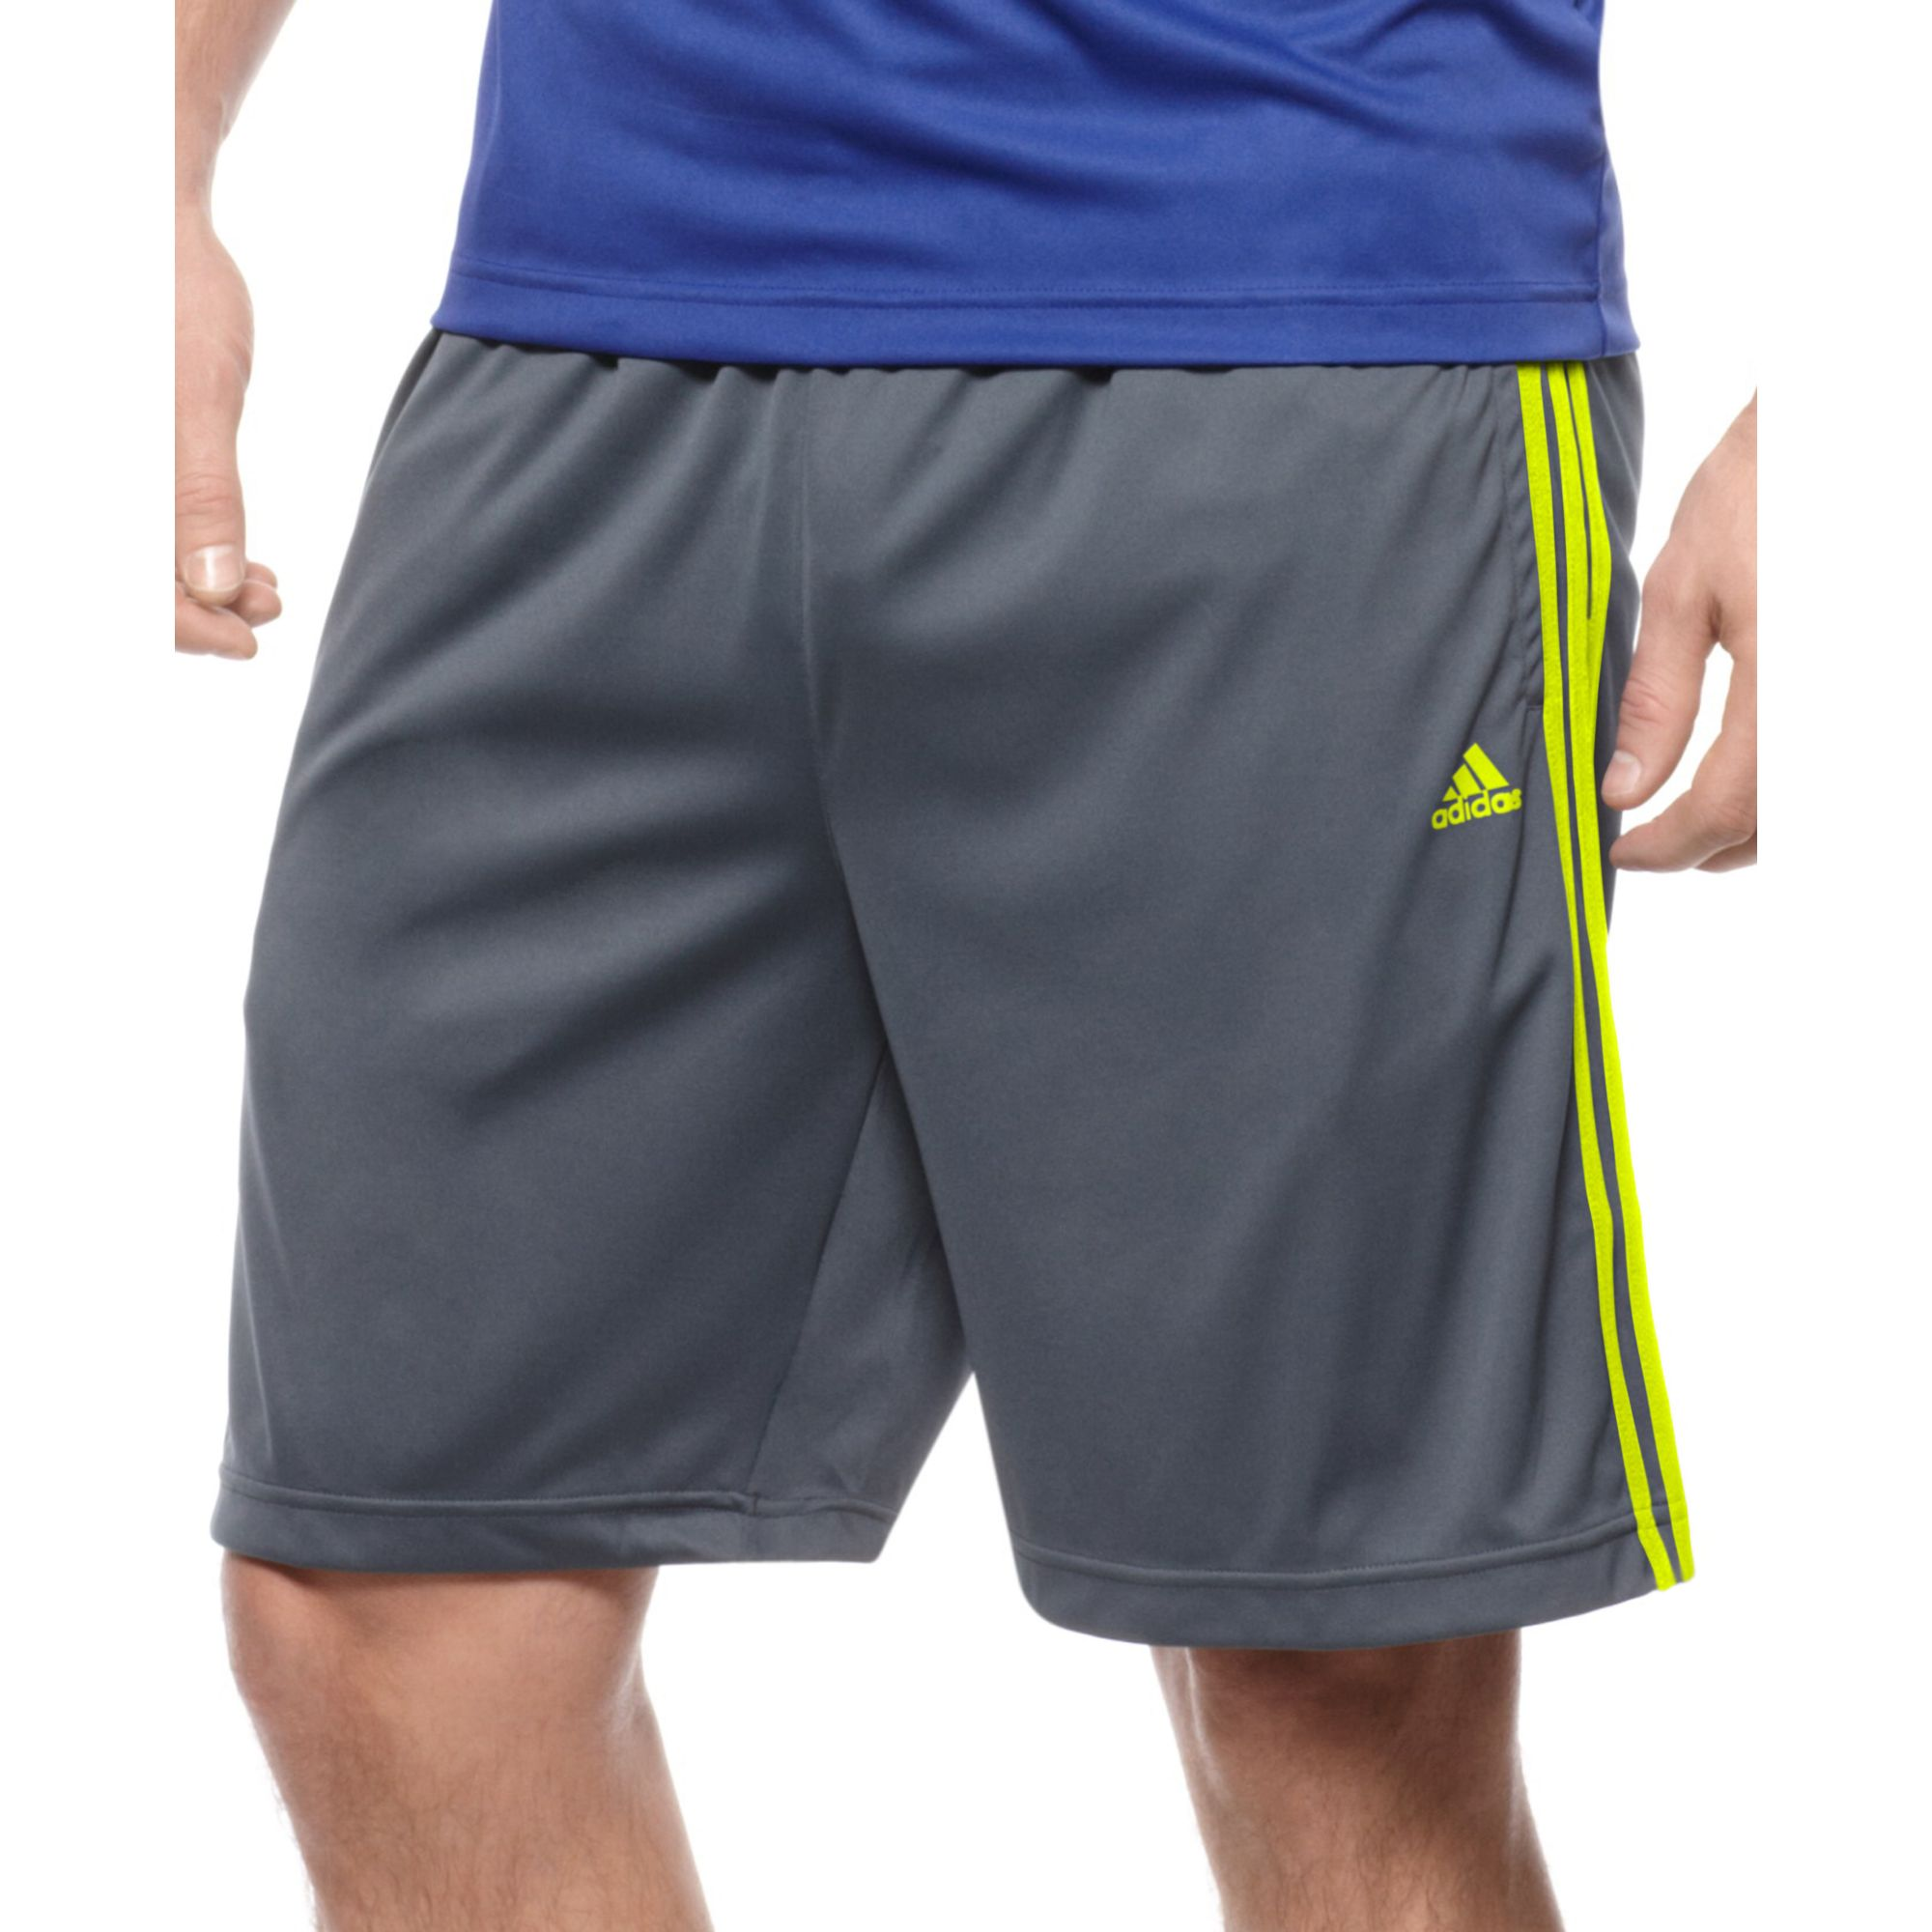 adidas essentials climalite shorts in gray for men lyst. Black Bedroom Furniture Sets. Home Design Ideas